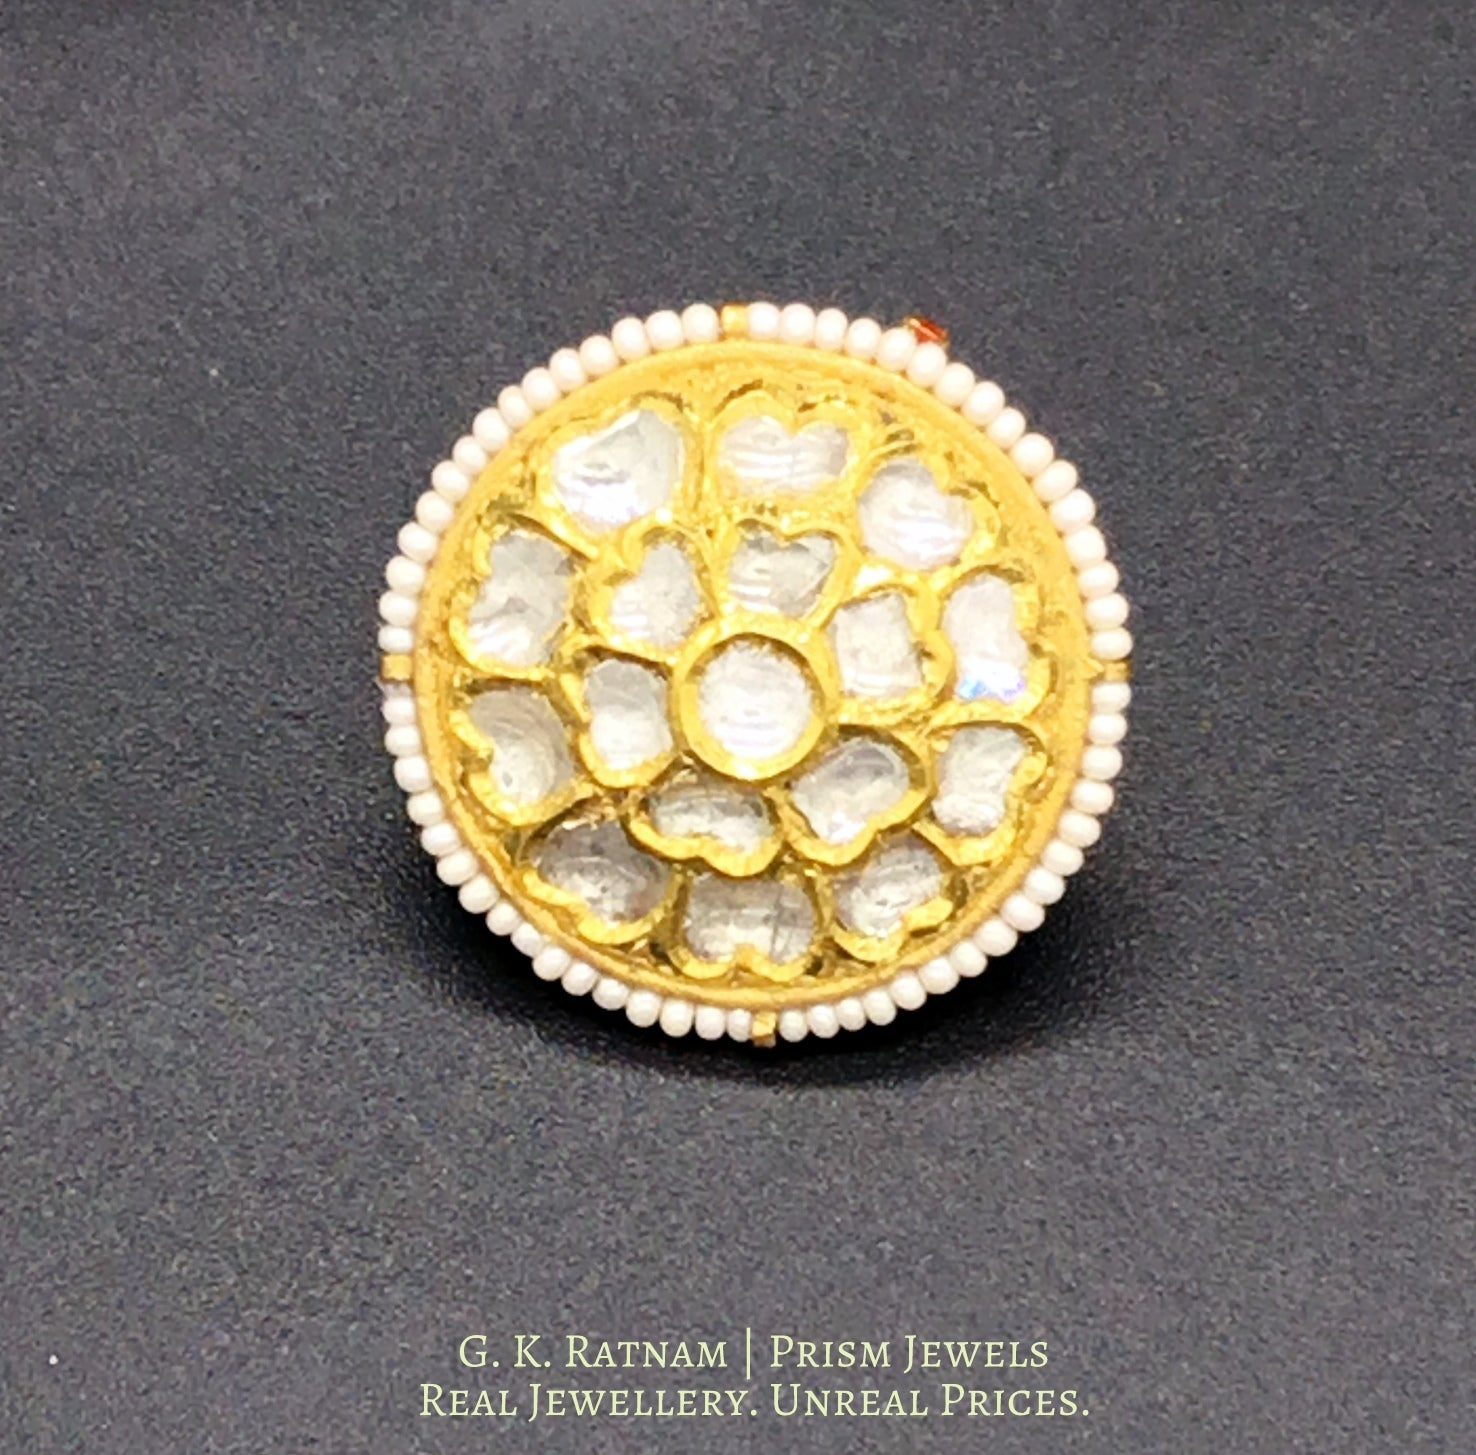 22k Gold and Diamond Polki Borla with Pearls - gold diamond polki kundan meena jadau jewellery